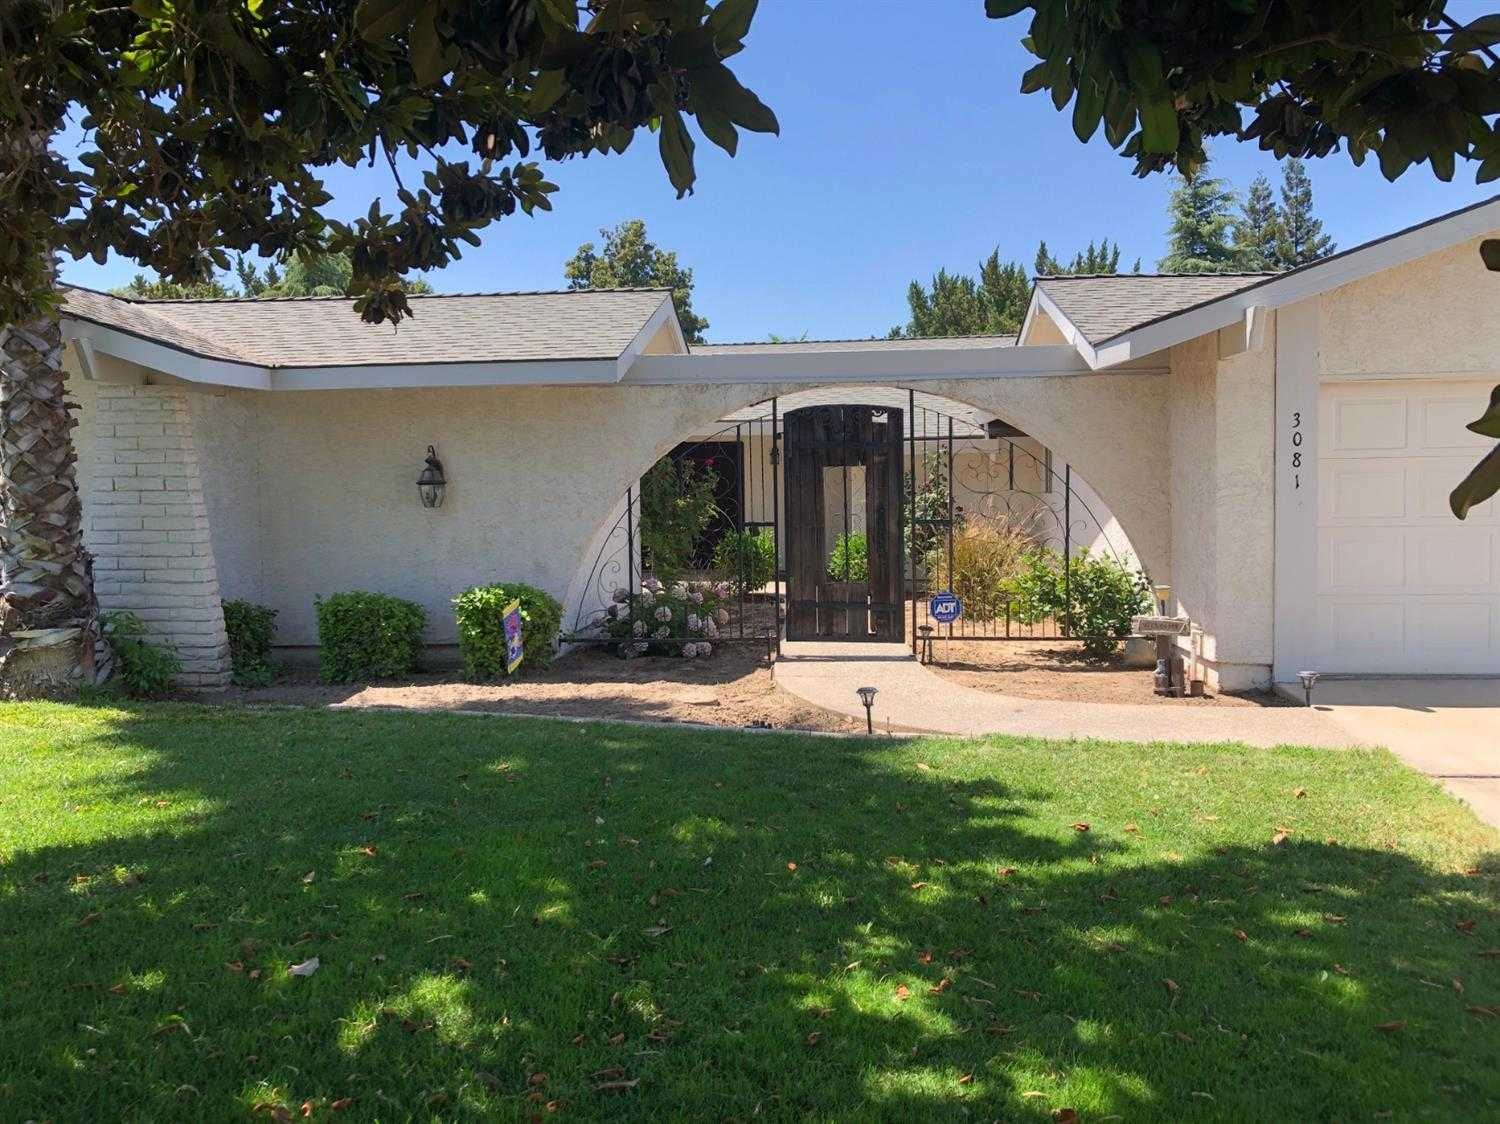 $379,900 - 4Br/3Ba -  for Sale in Atwater